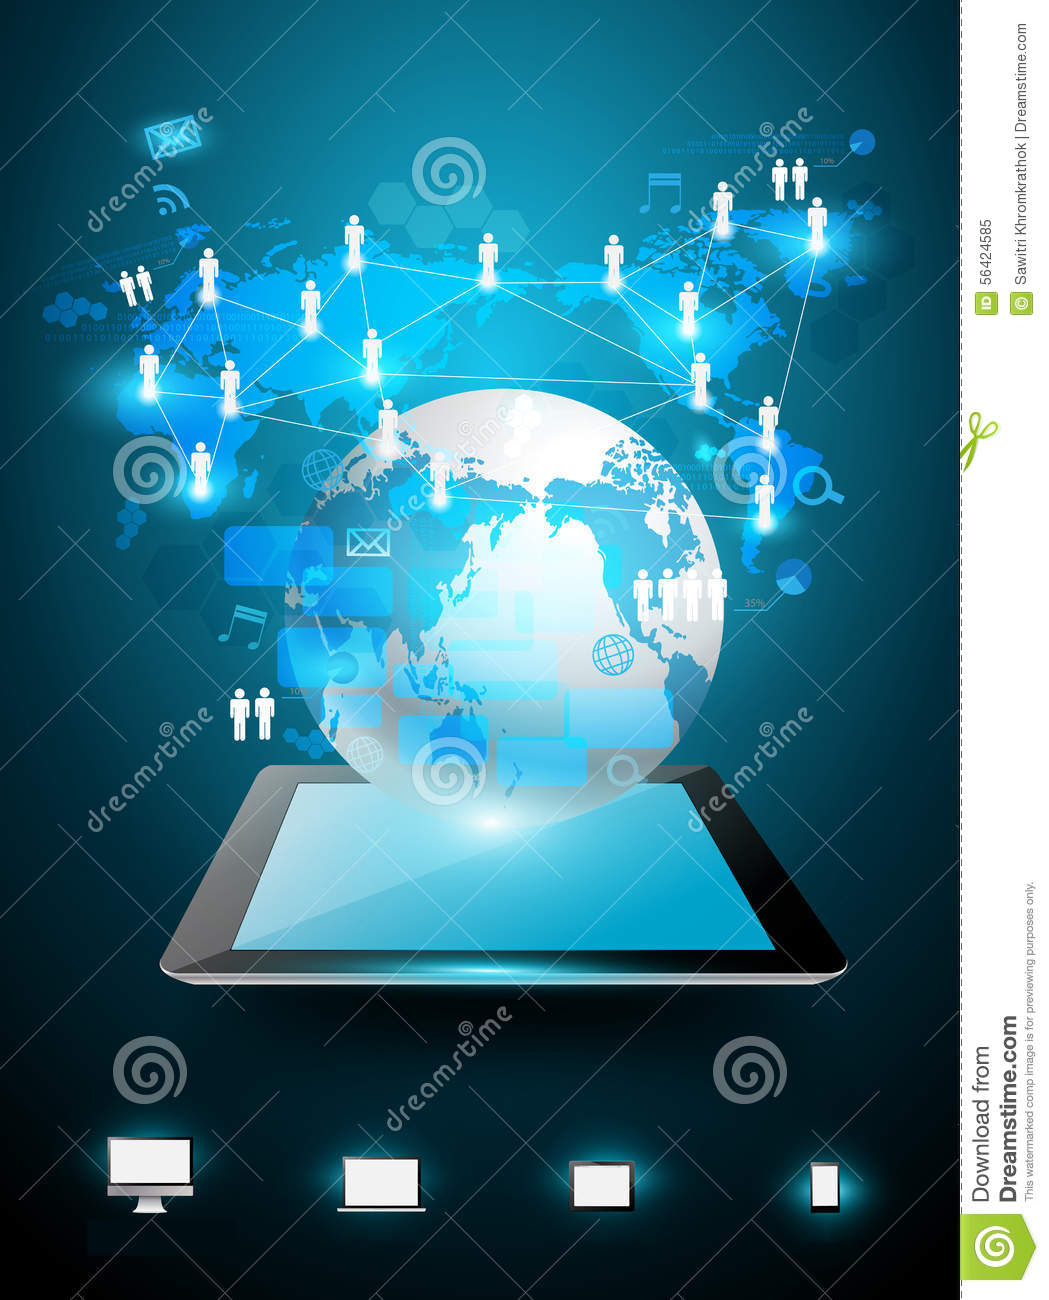 Business Technology: Vector Technology Business Ideas Concept Stock Vector